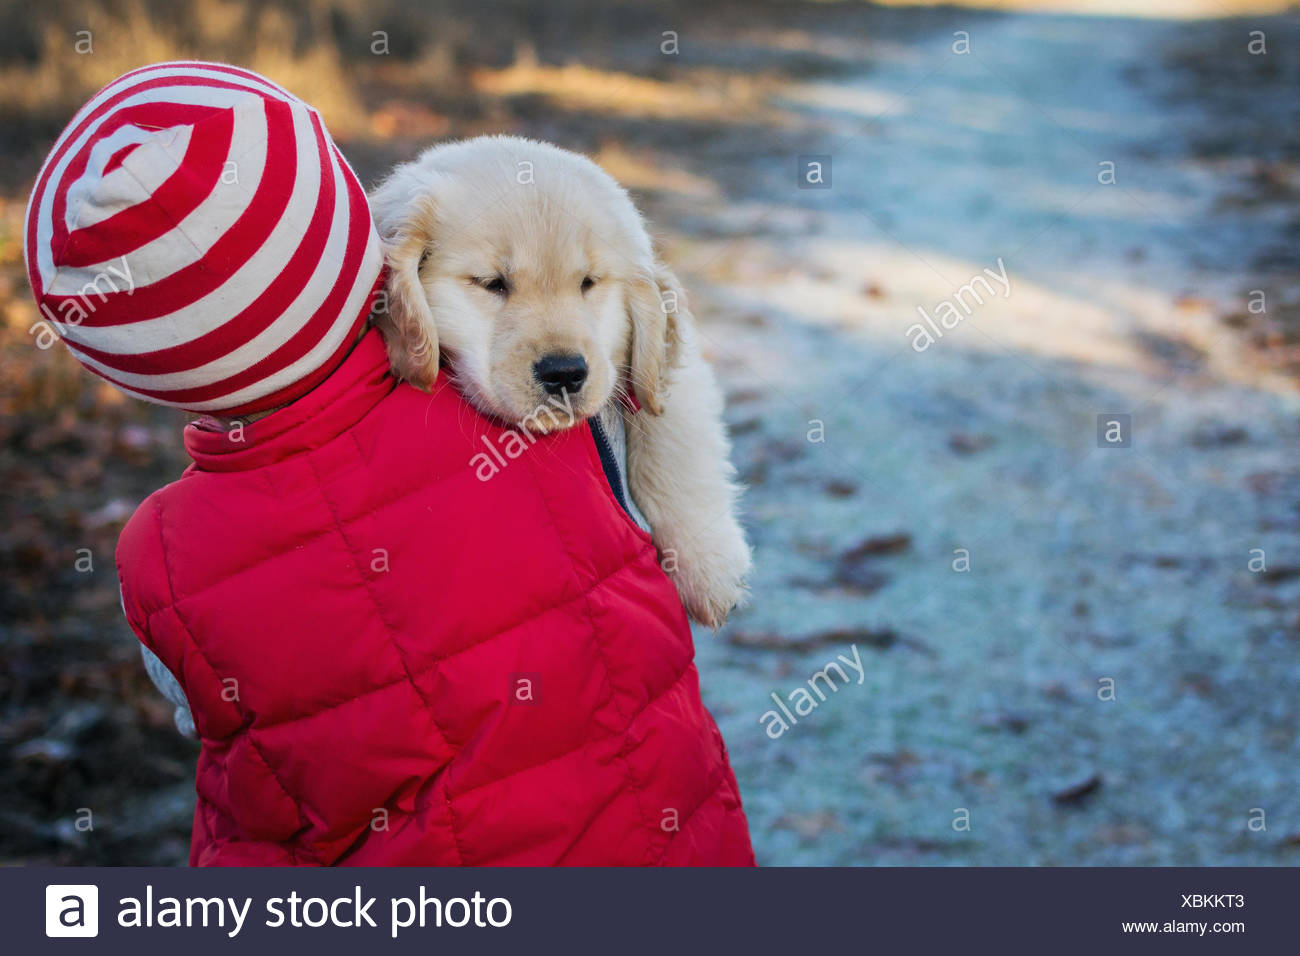 A Dog Being Carried Stock Photos & A Dog Being Carried Stock Images ...